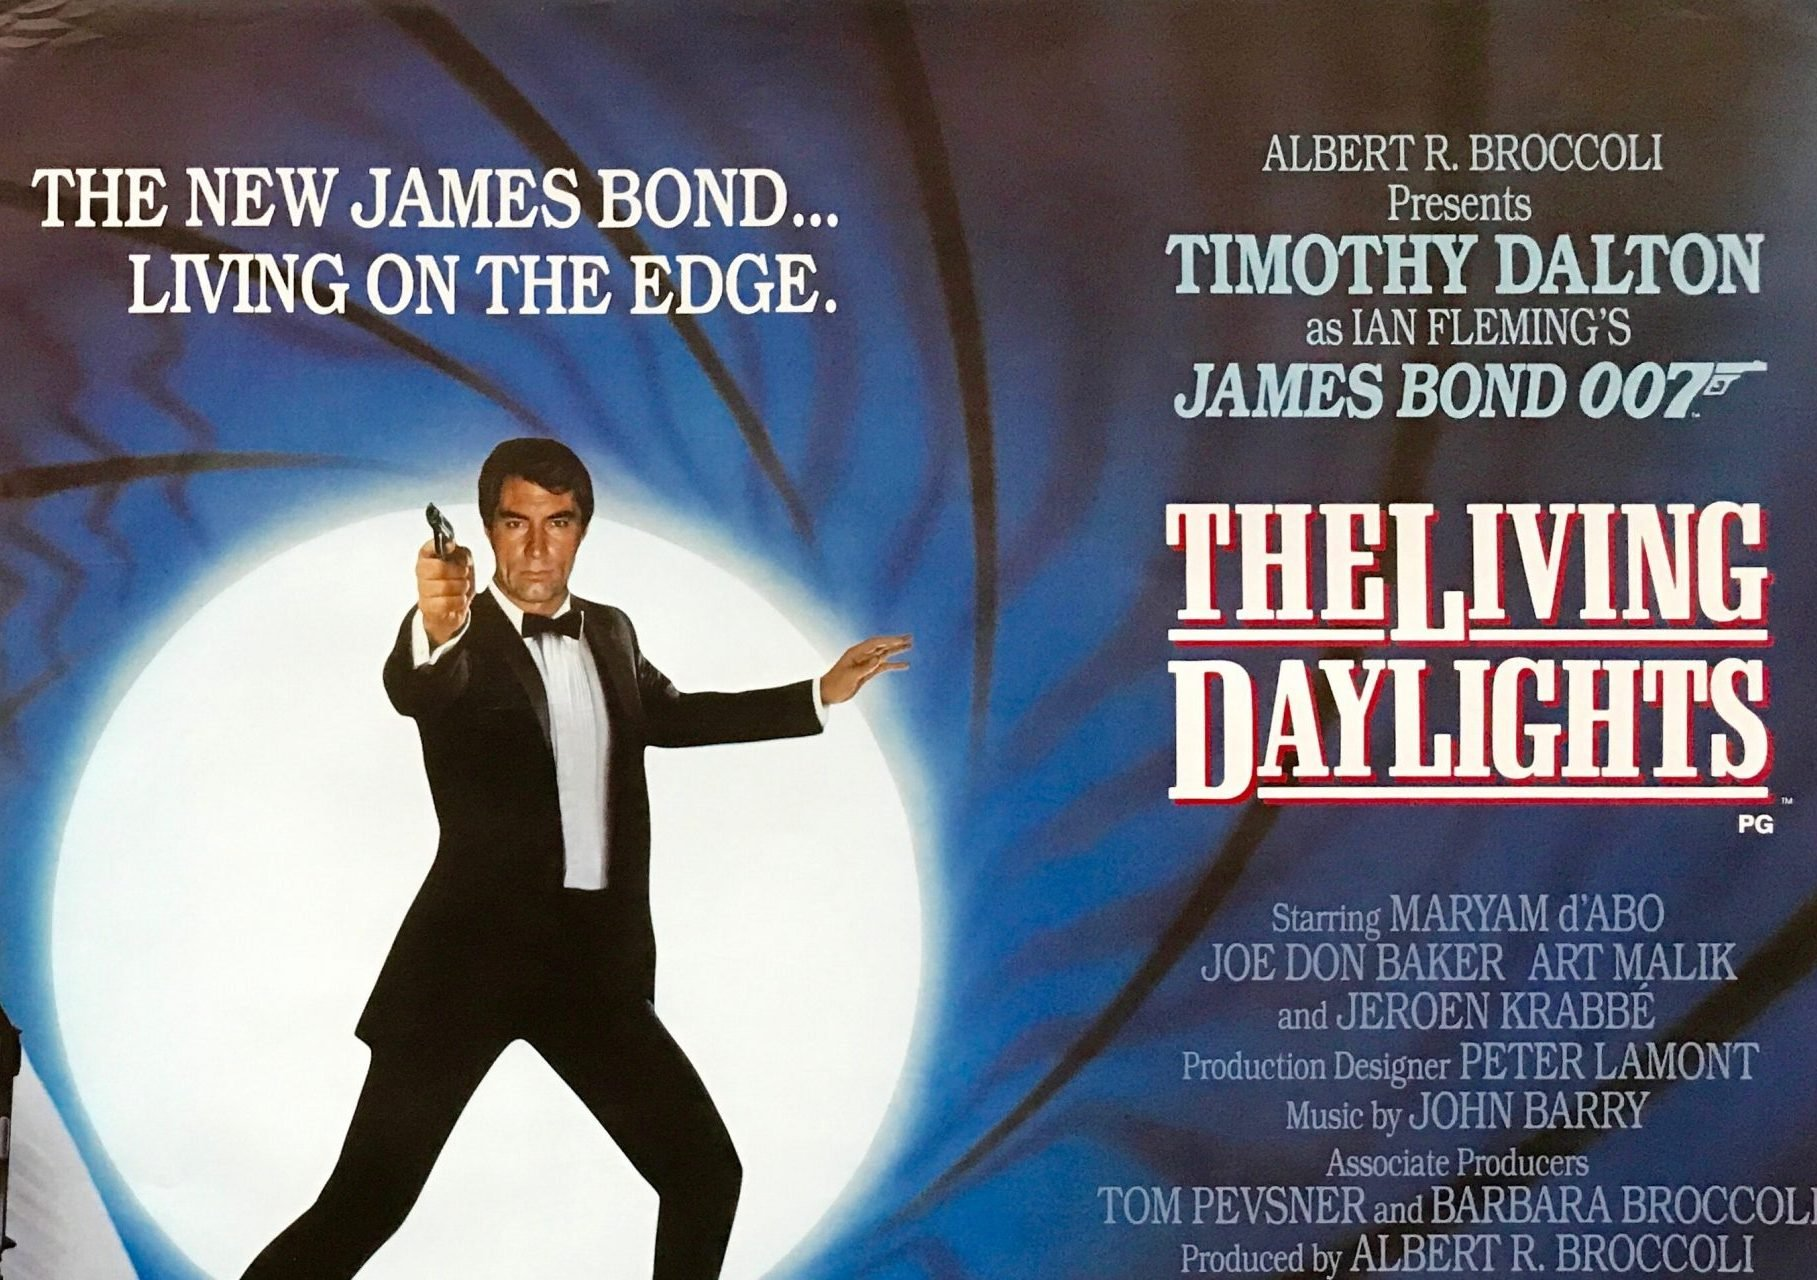 IMG 7604 1 e1569504543625 scaled e1622551857944 20 Reasons Why Timothy Dalton Was Probably The Best James Bond Ever